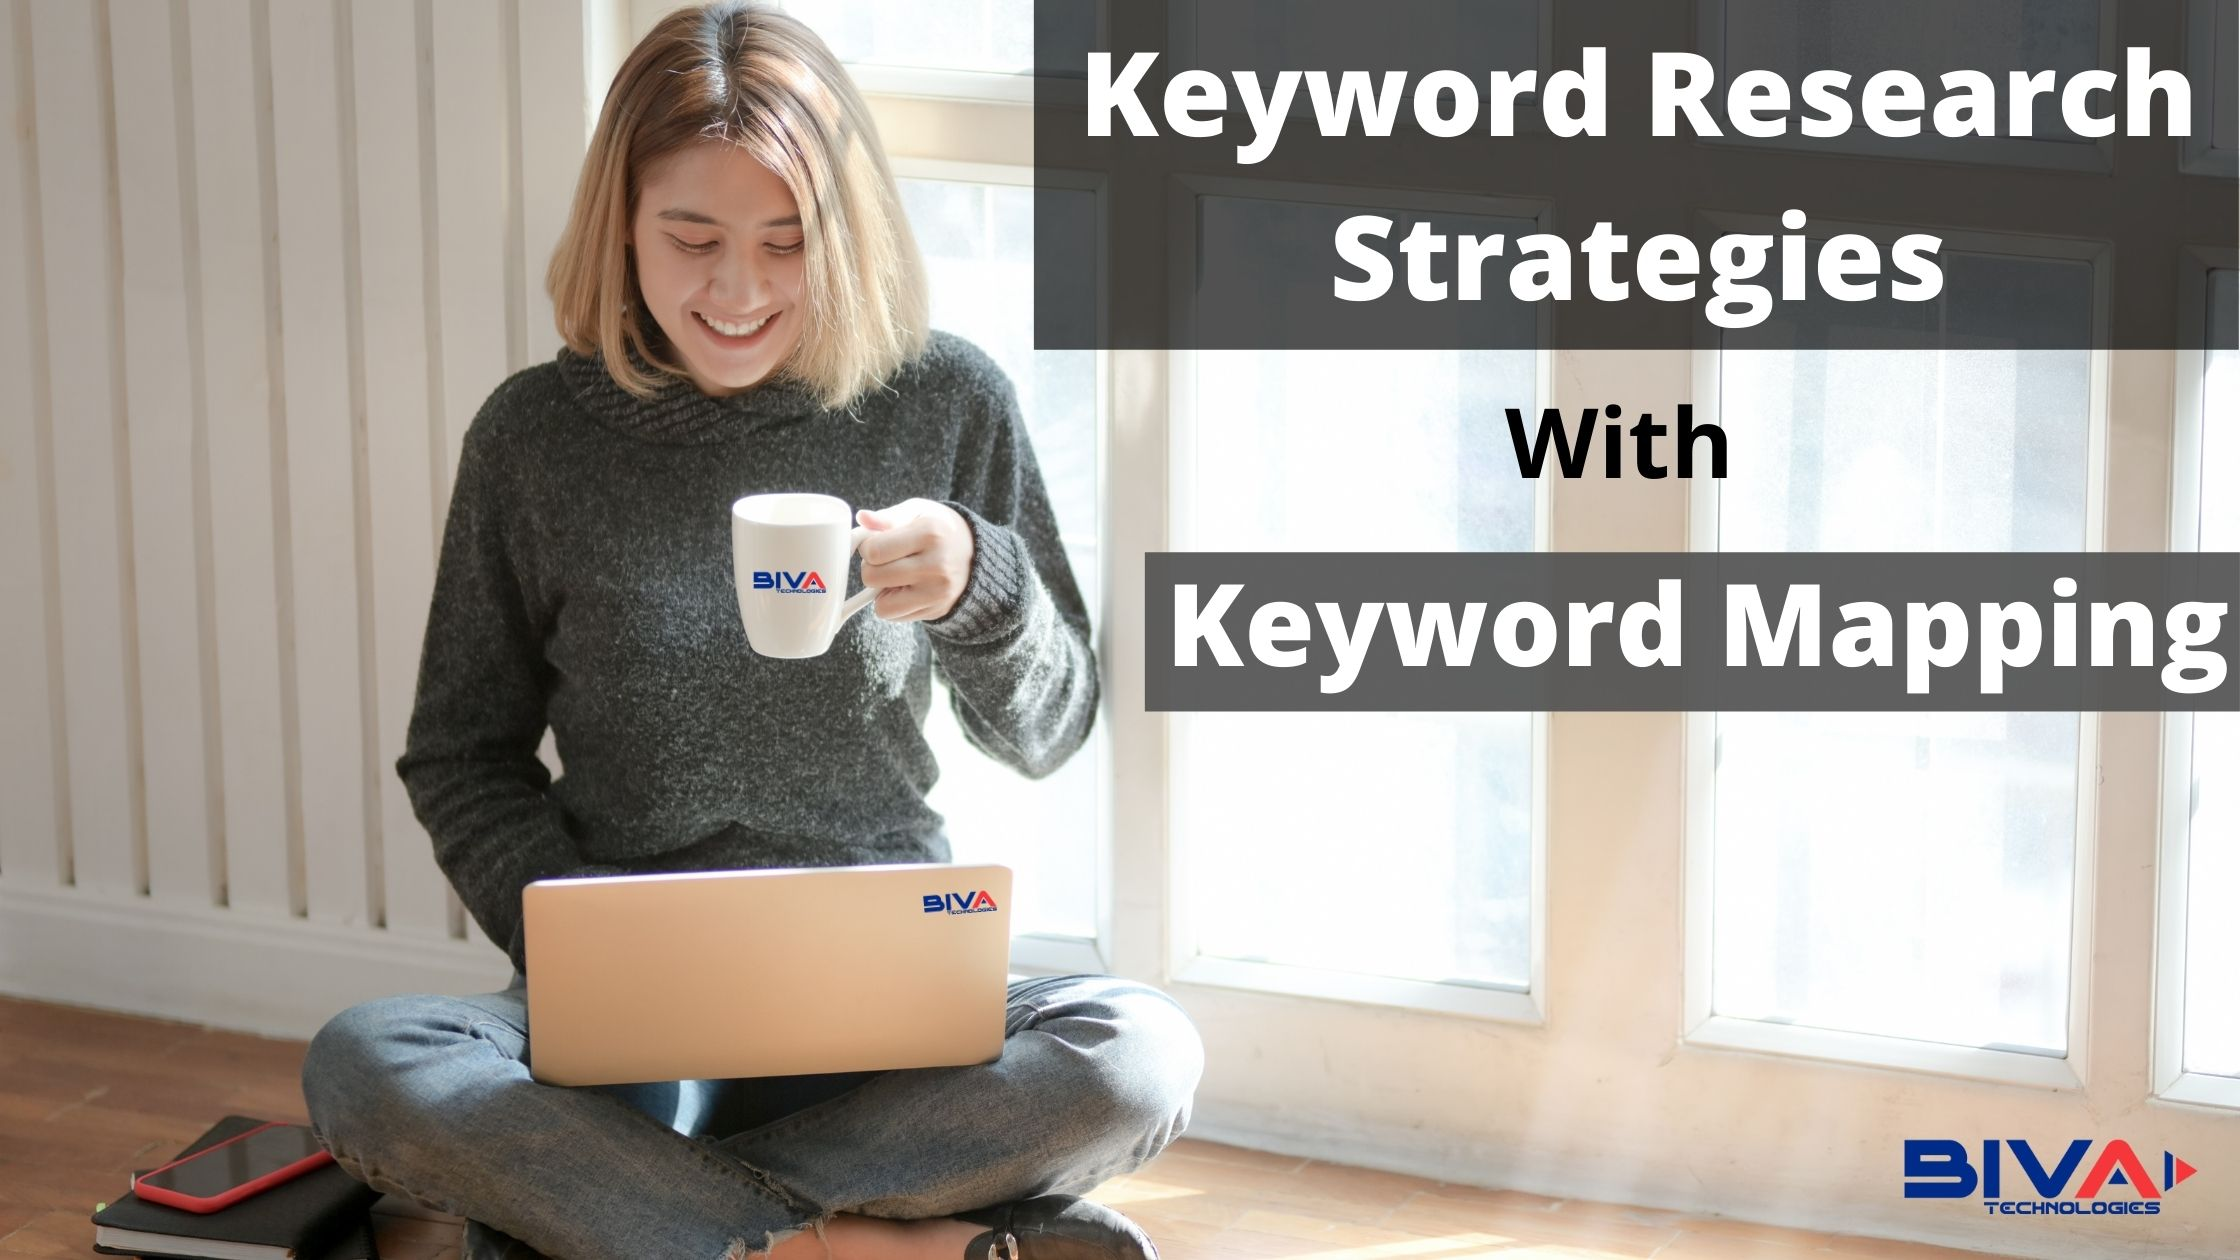 Best Keyword Research Strategies to Hack Ranking with Keyword Mapping